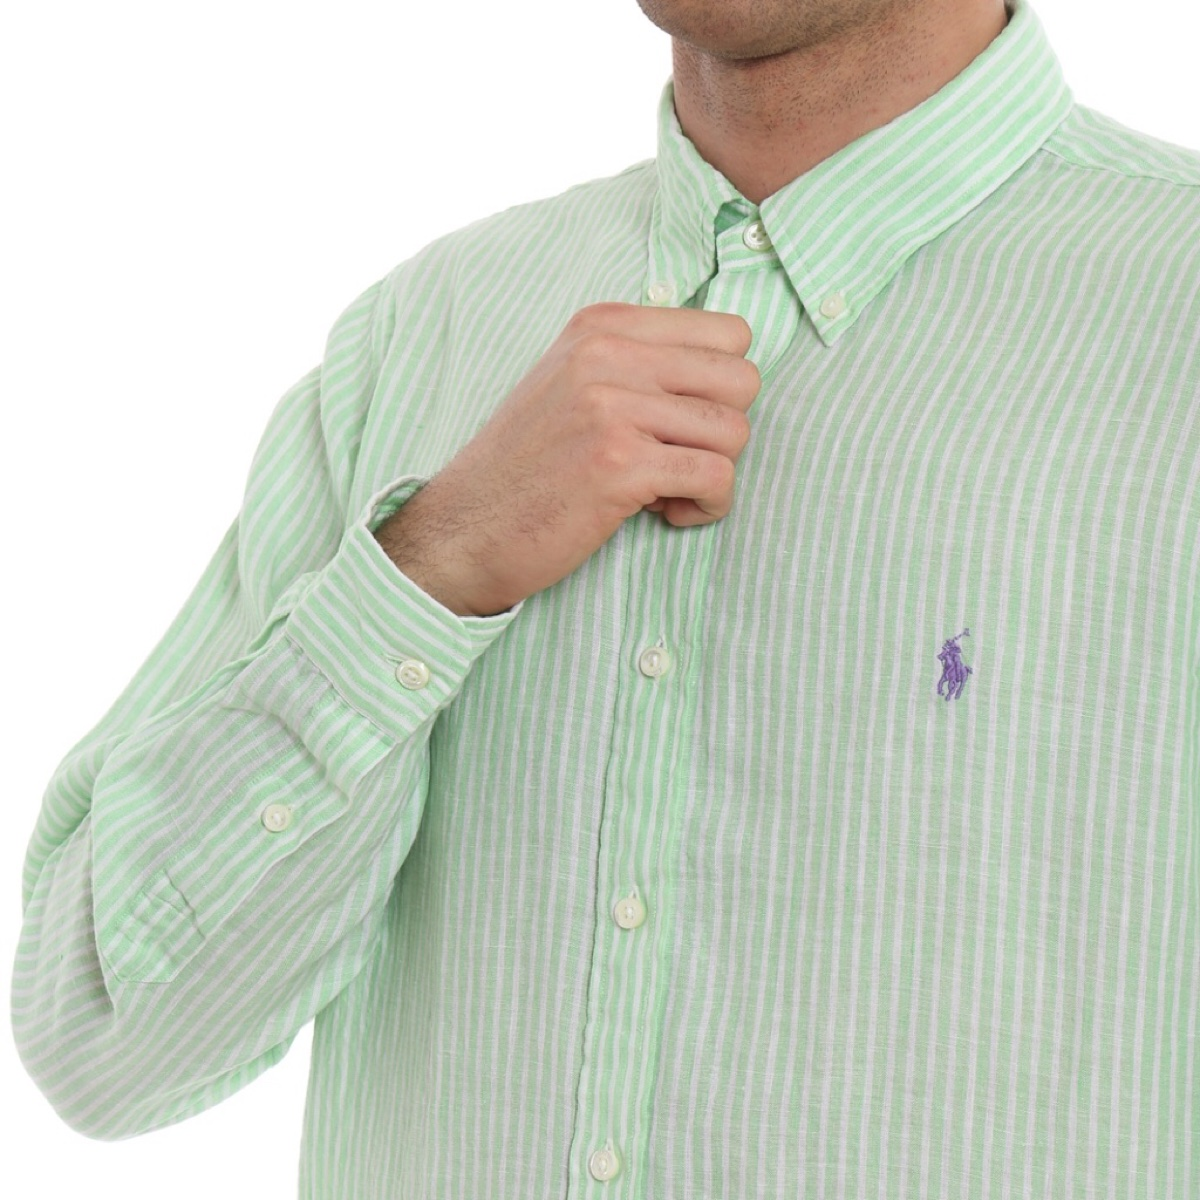 Polo Ralph Lauren Mint Green Striped Linen Shirt